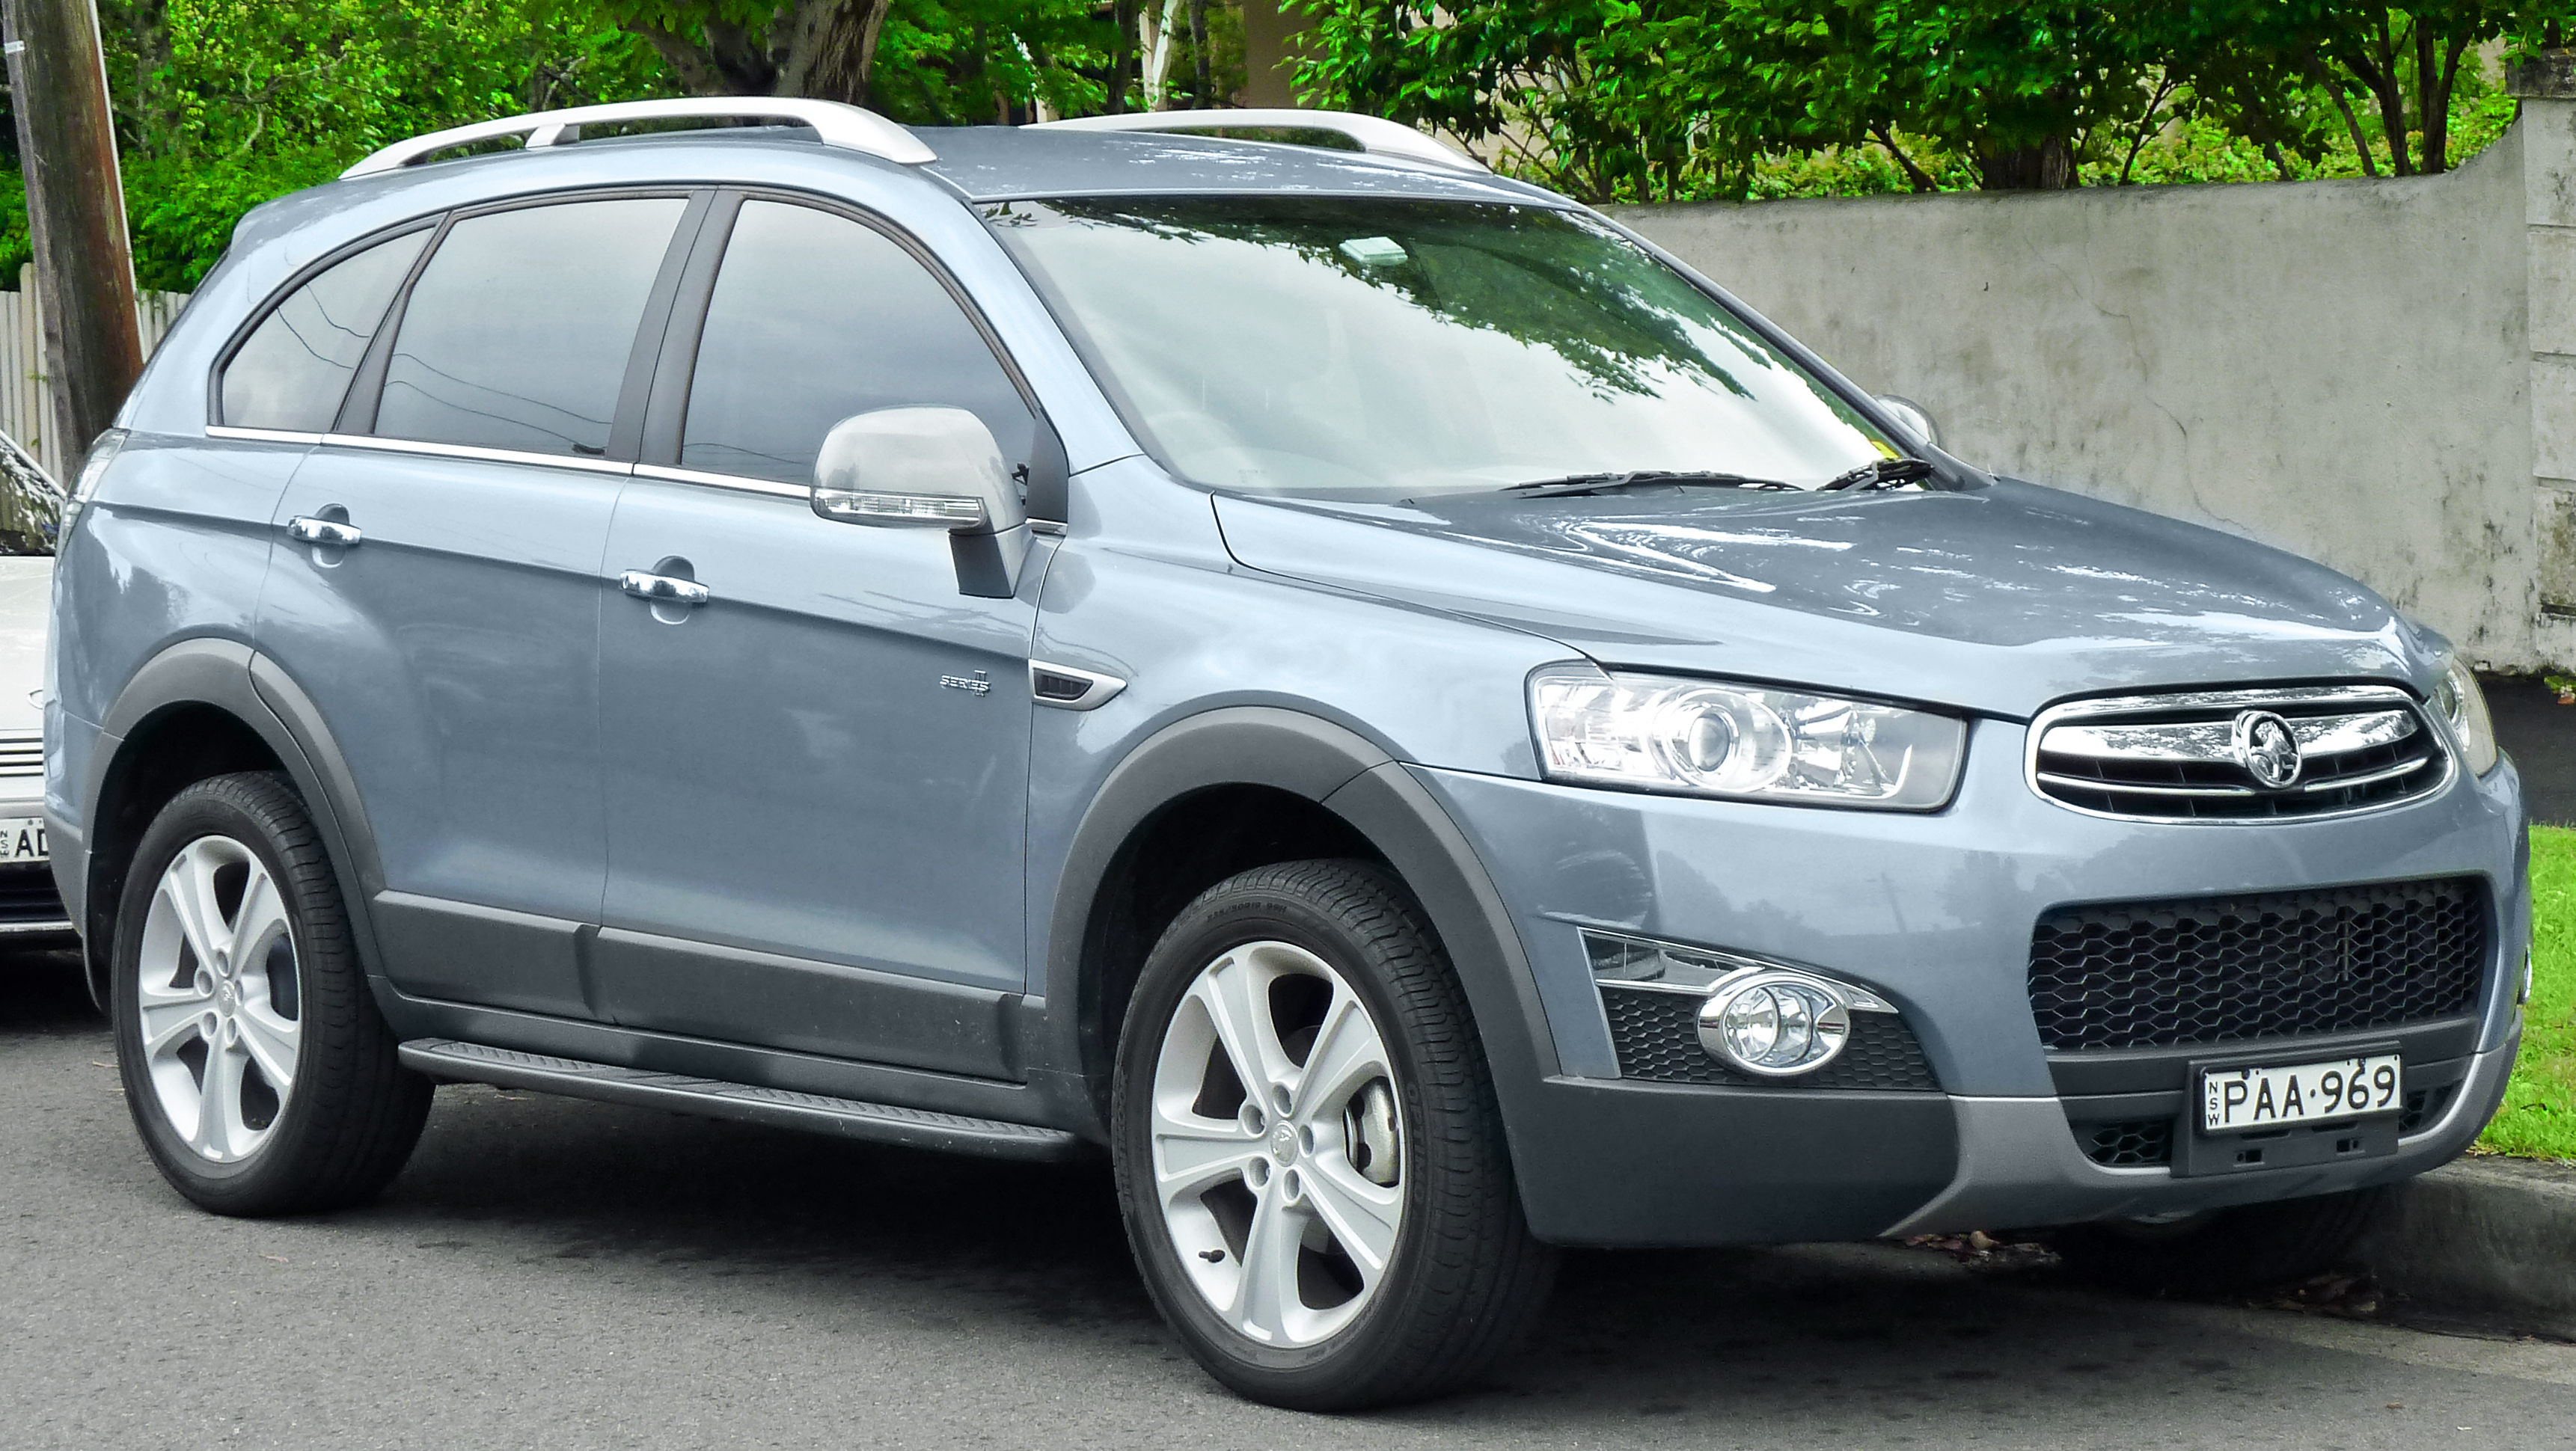 holden frontera (4-type) 2011 images